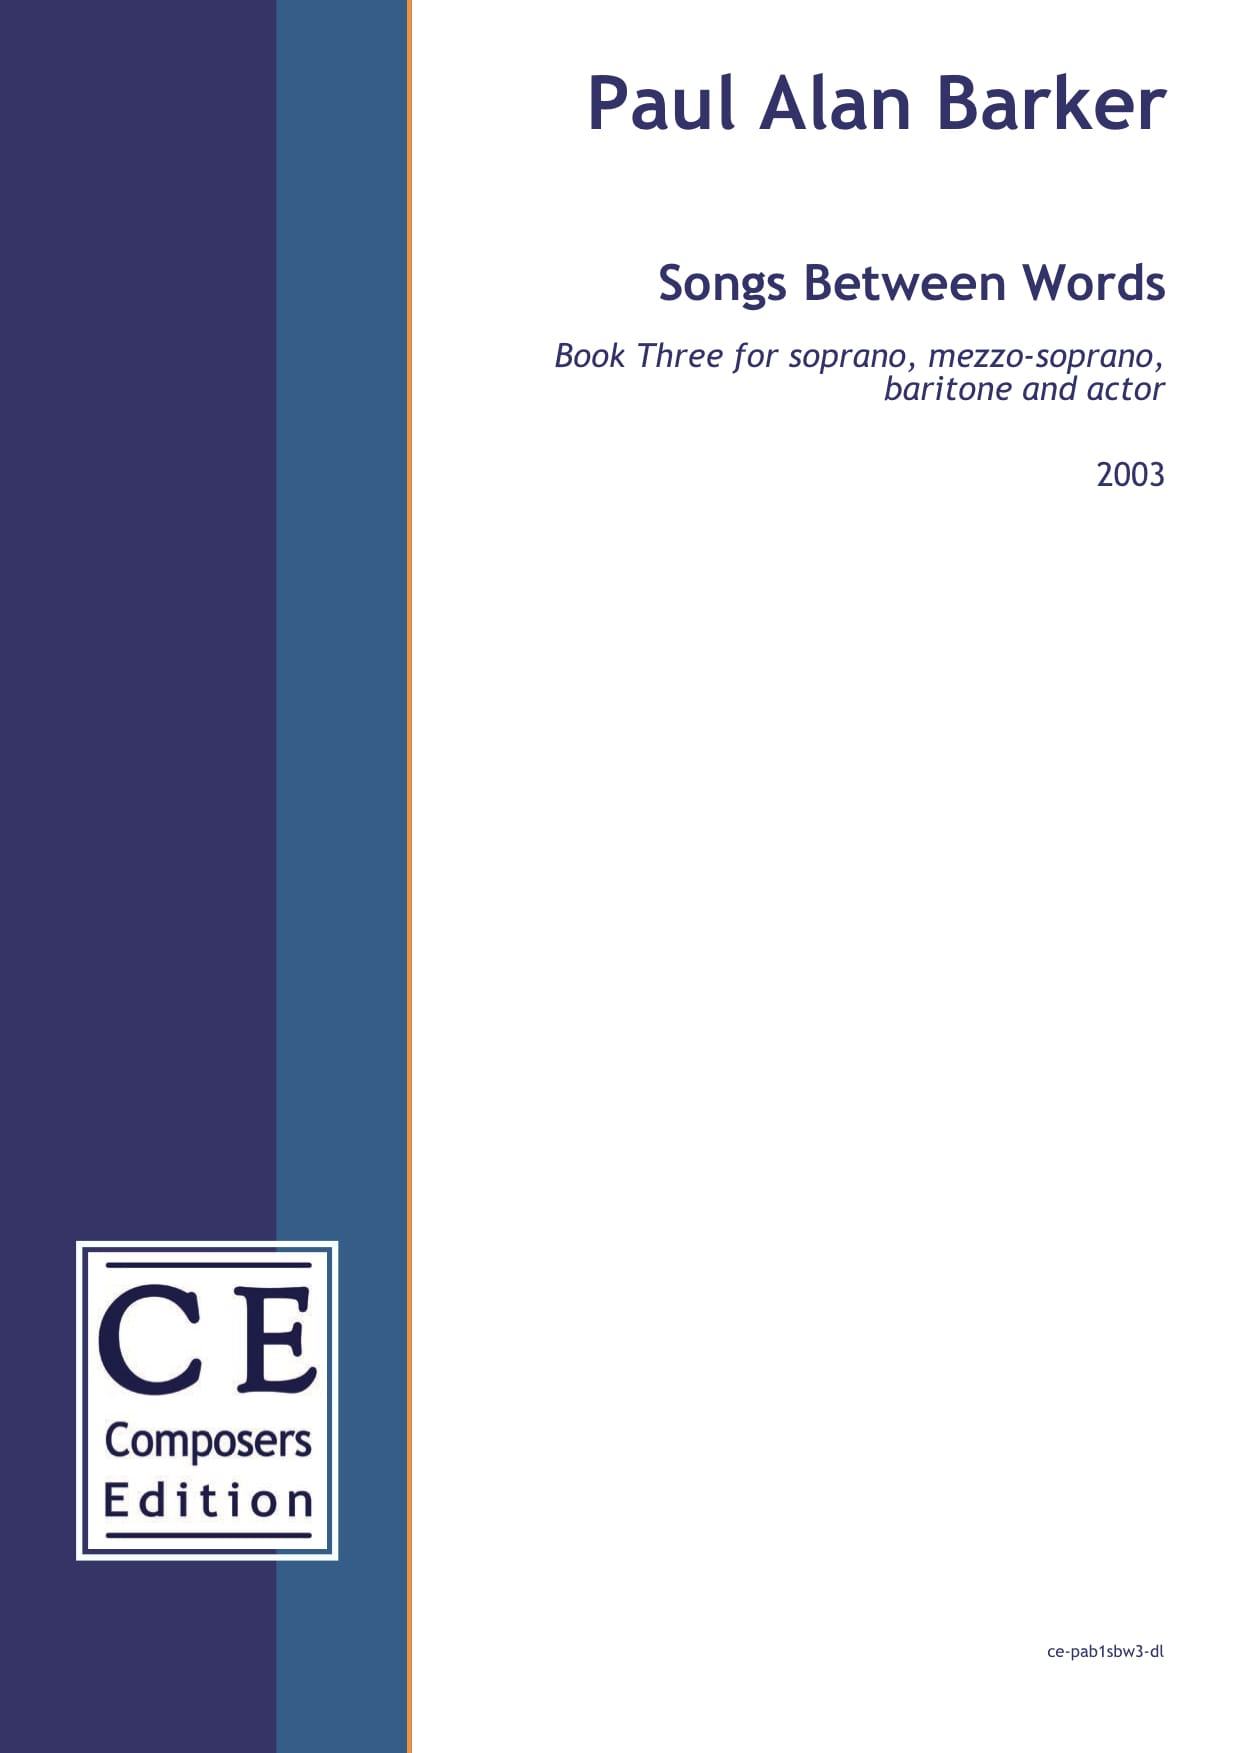 Paul Alan Barker: Songs Between Words (Book Three) for soprano, mezzo-soprano, baritone and actor